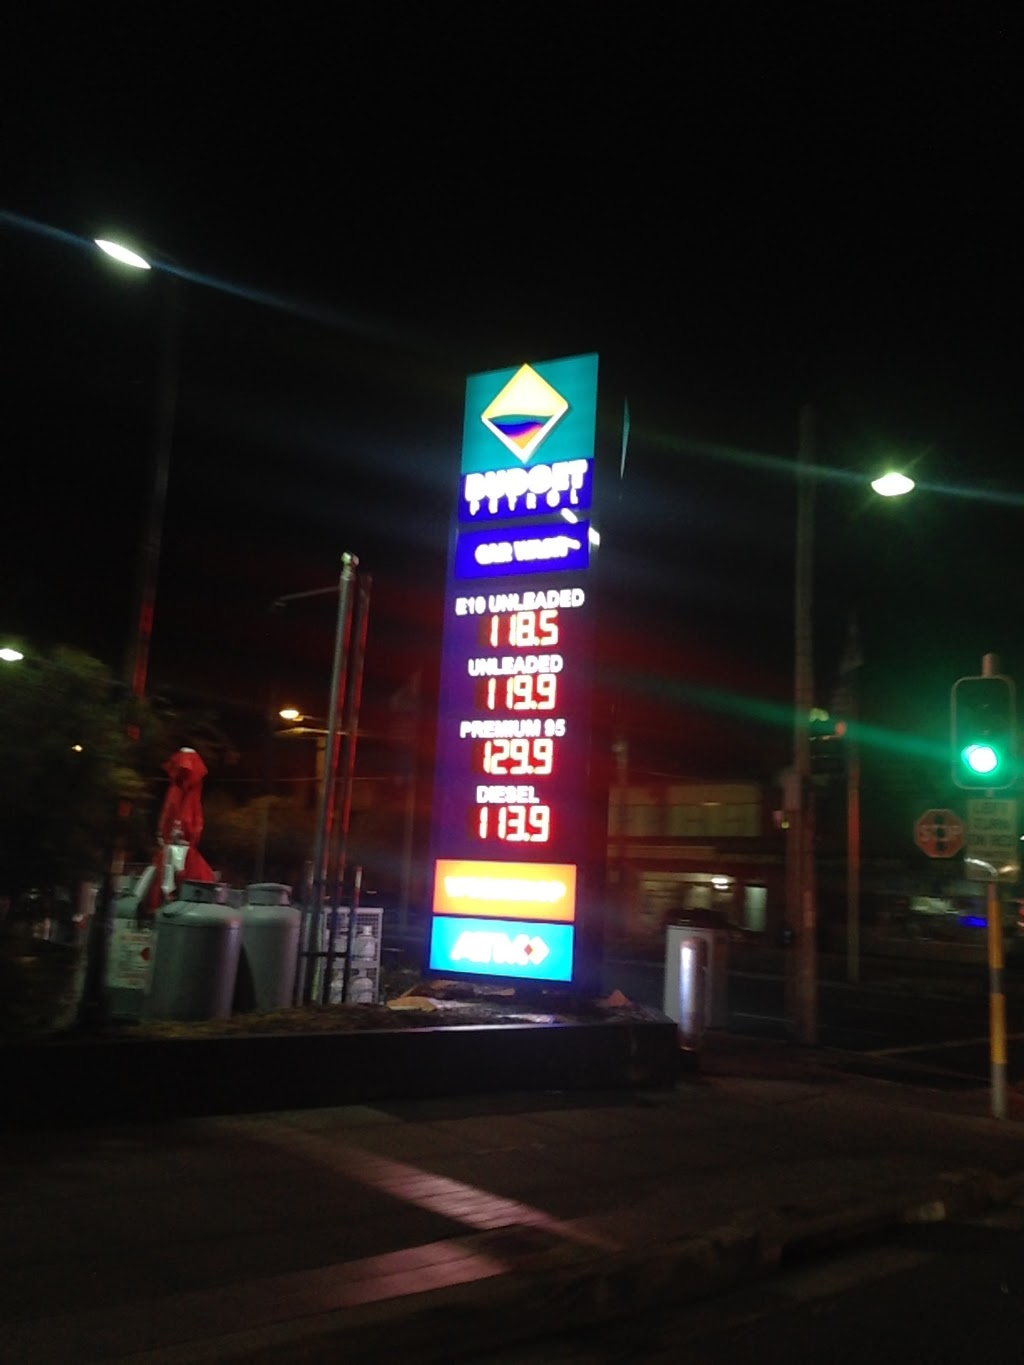 Budget Petrol | gas station | 553 Bunnerong Rd, Matraville NSW 2036, Australia | 0296613139 OR +61 2 9661 3139